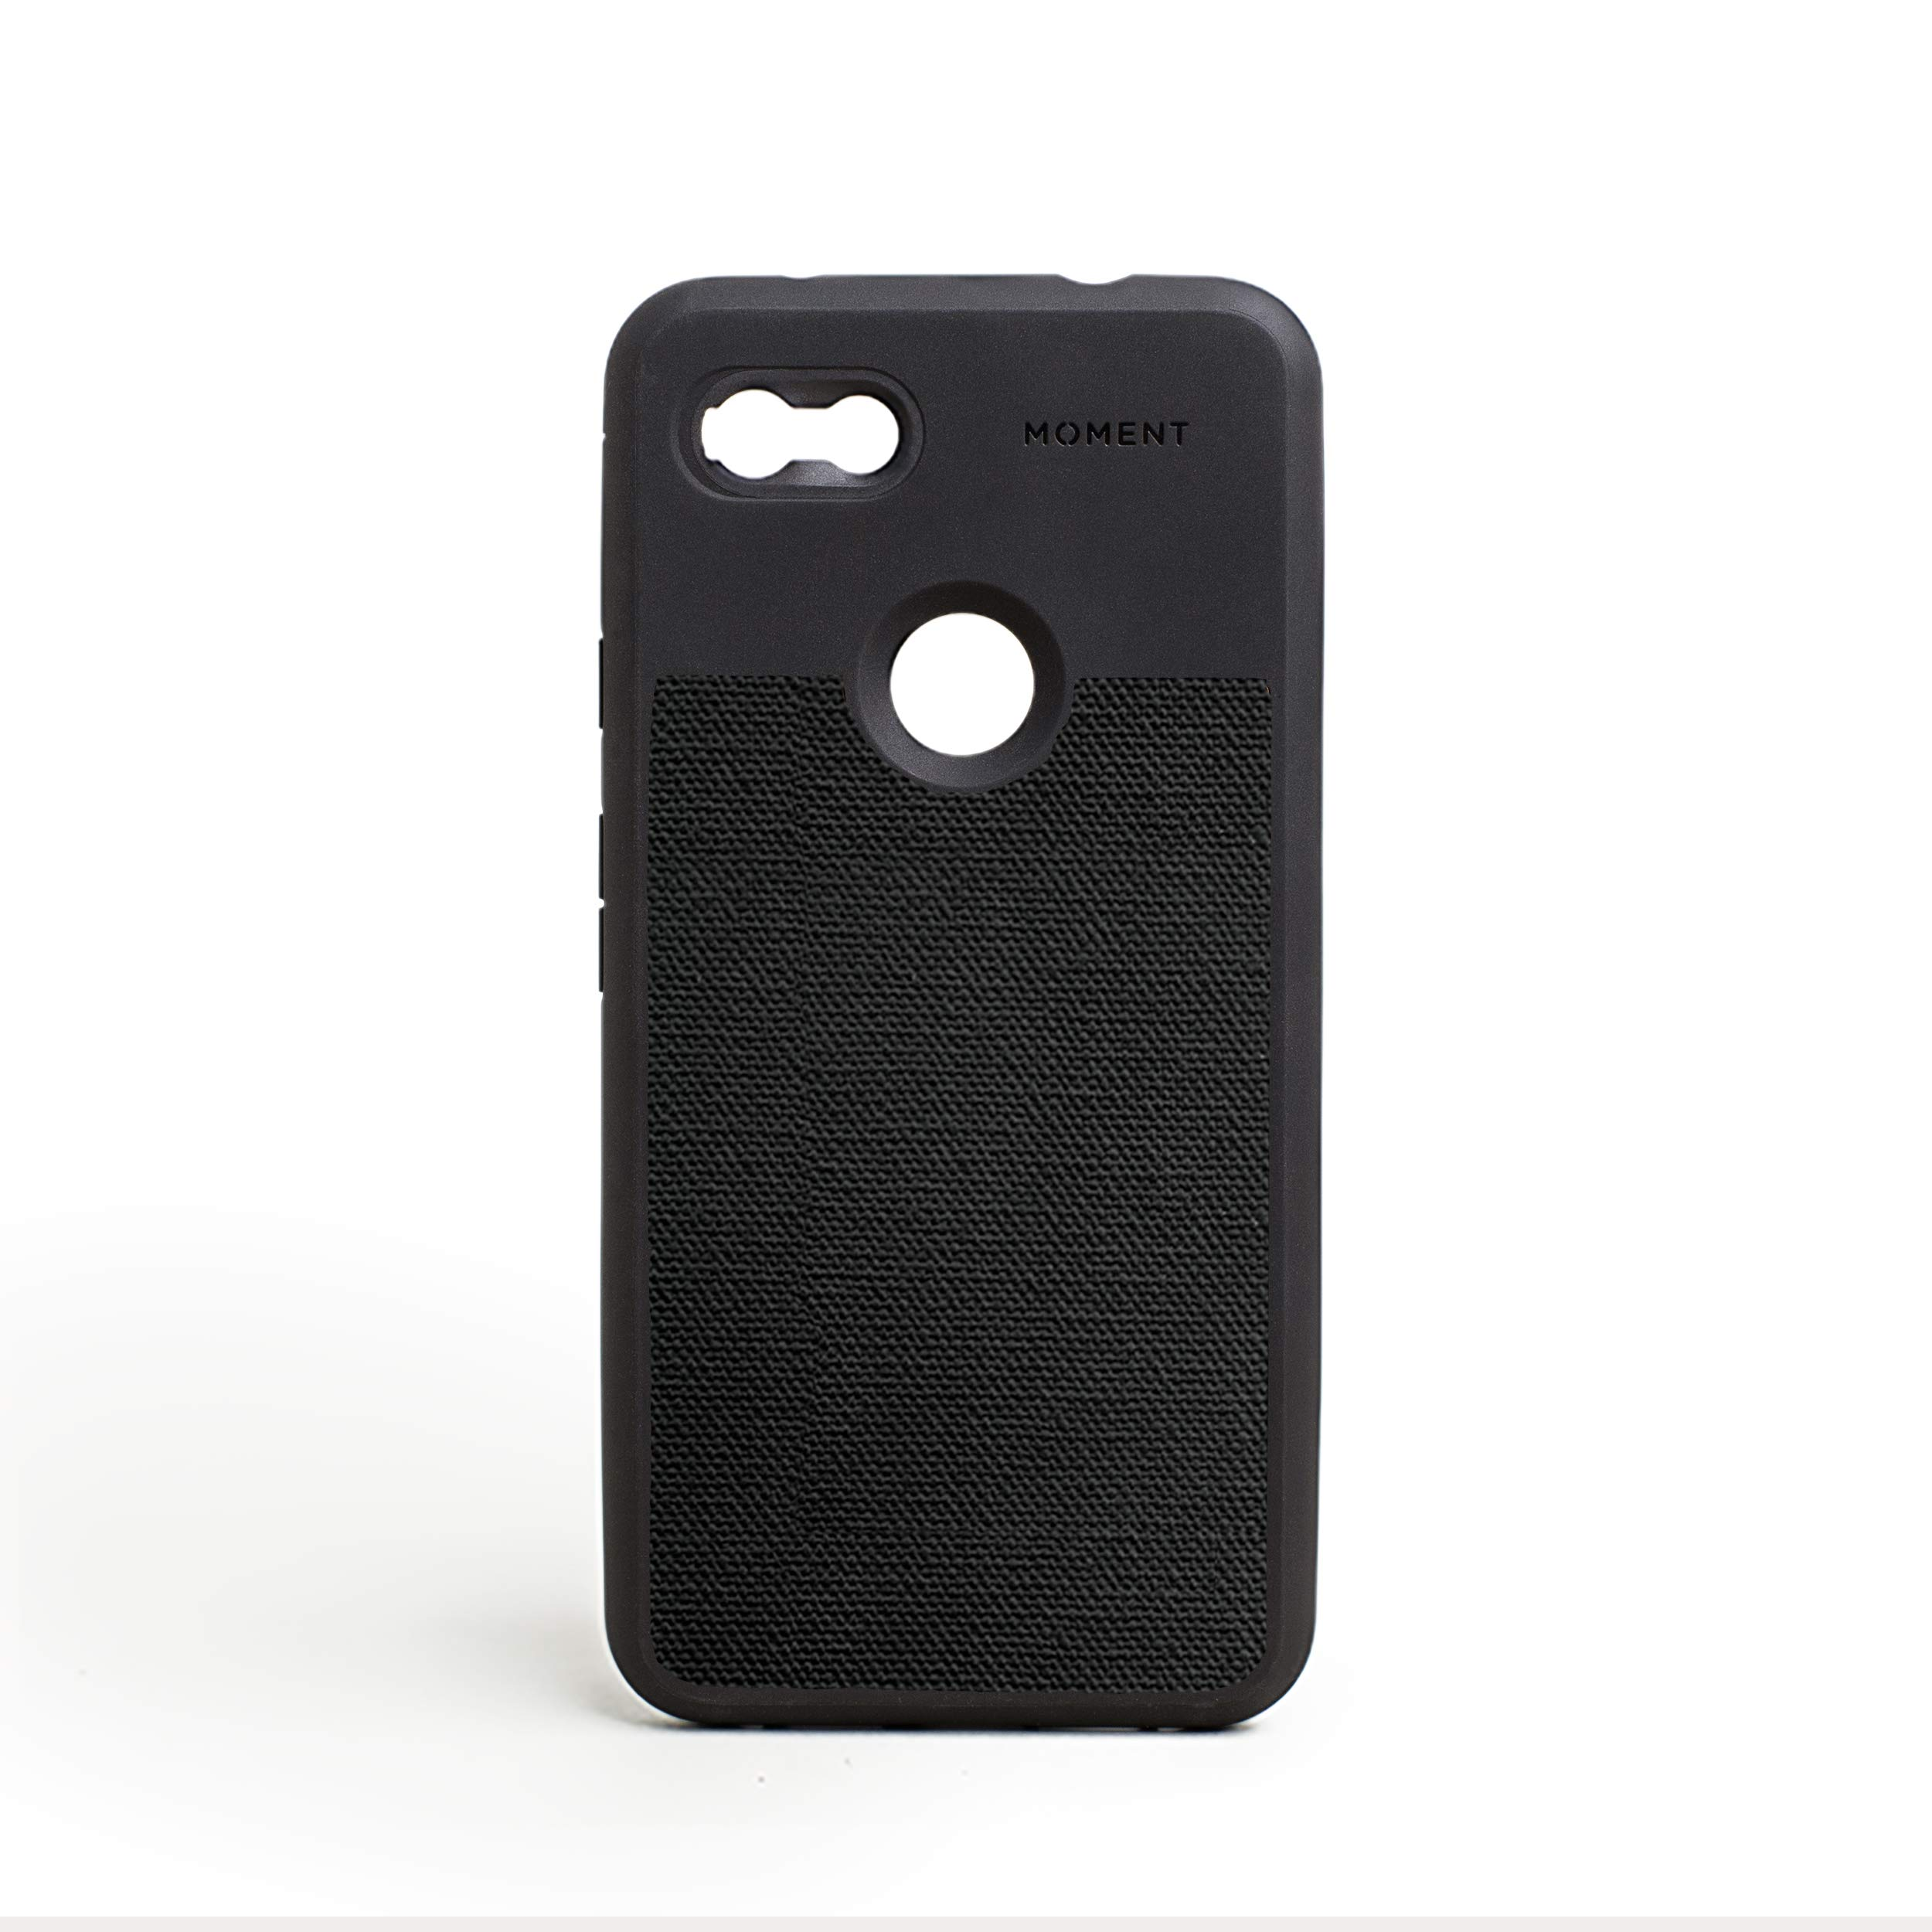 ویکالا · خرید  اصل اورجینال · خرید از آمازون · Pixel 3aXL Case || Moment Photo Case in Black Canvas - Thin, Protective, Wrist Strap Friendly case for Camera Lovers. wekala · ویکالا